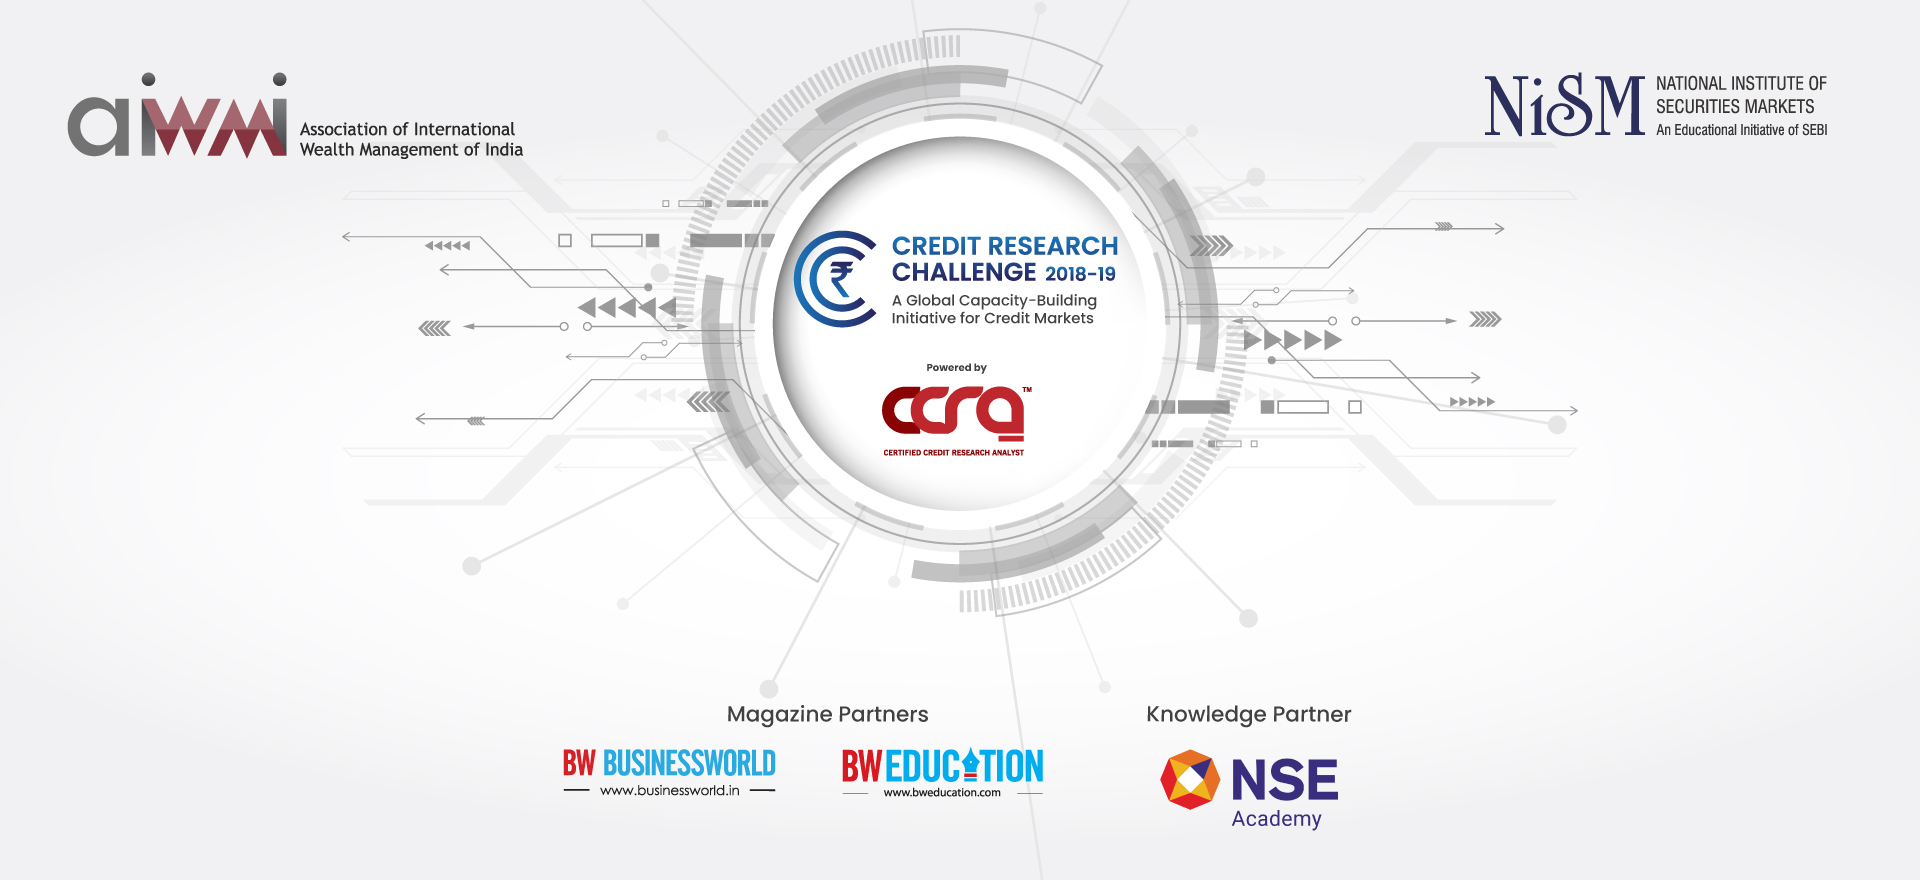 Credit Research Challenge 2018-19